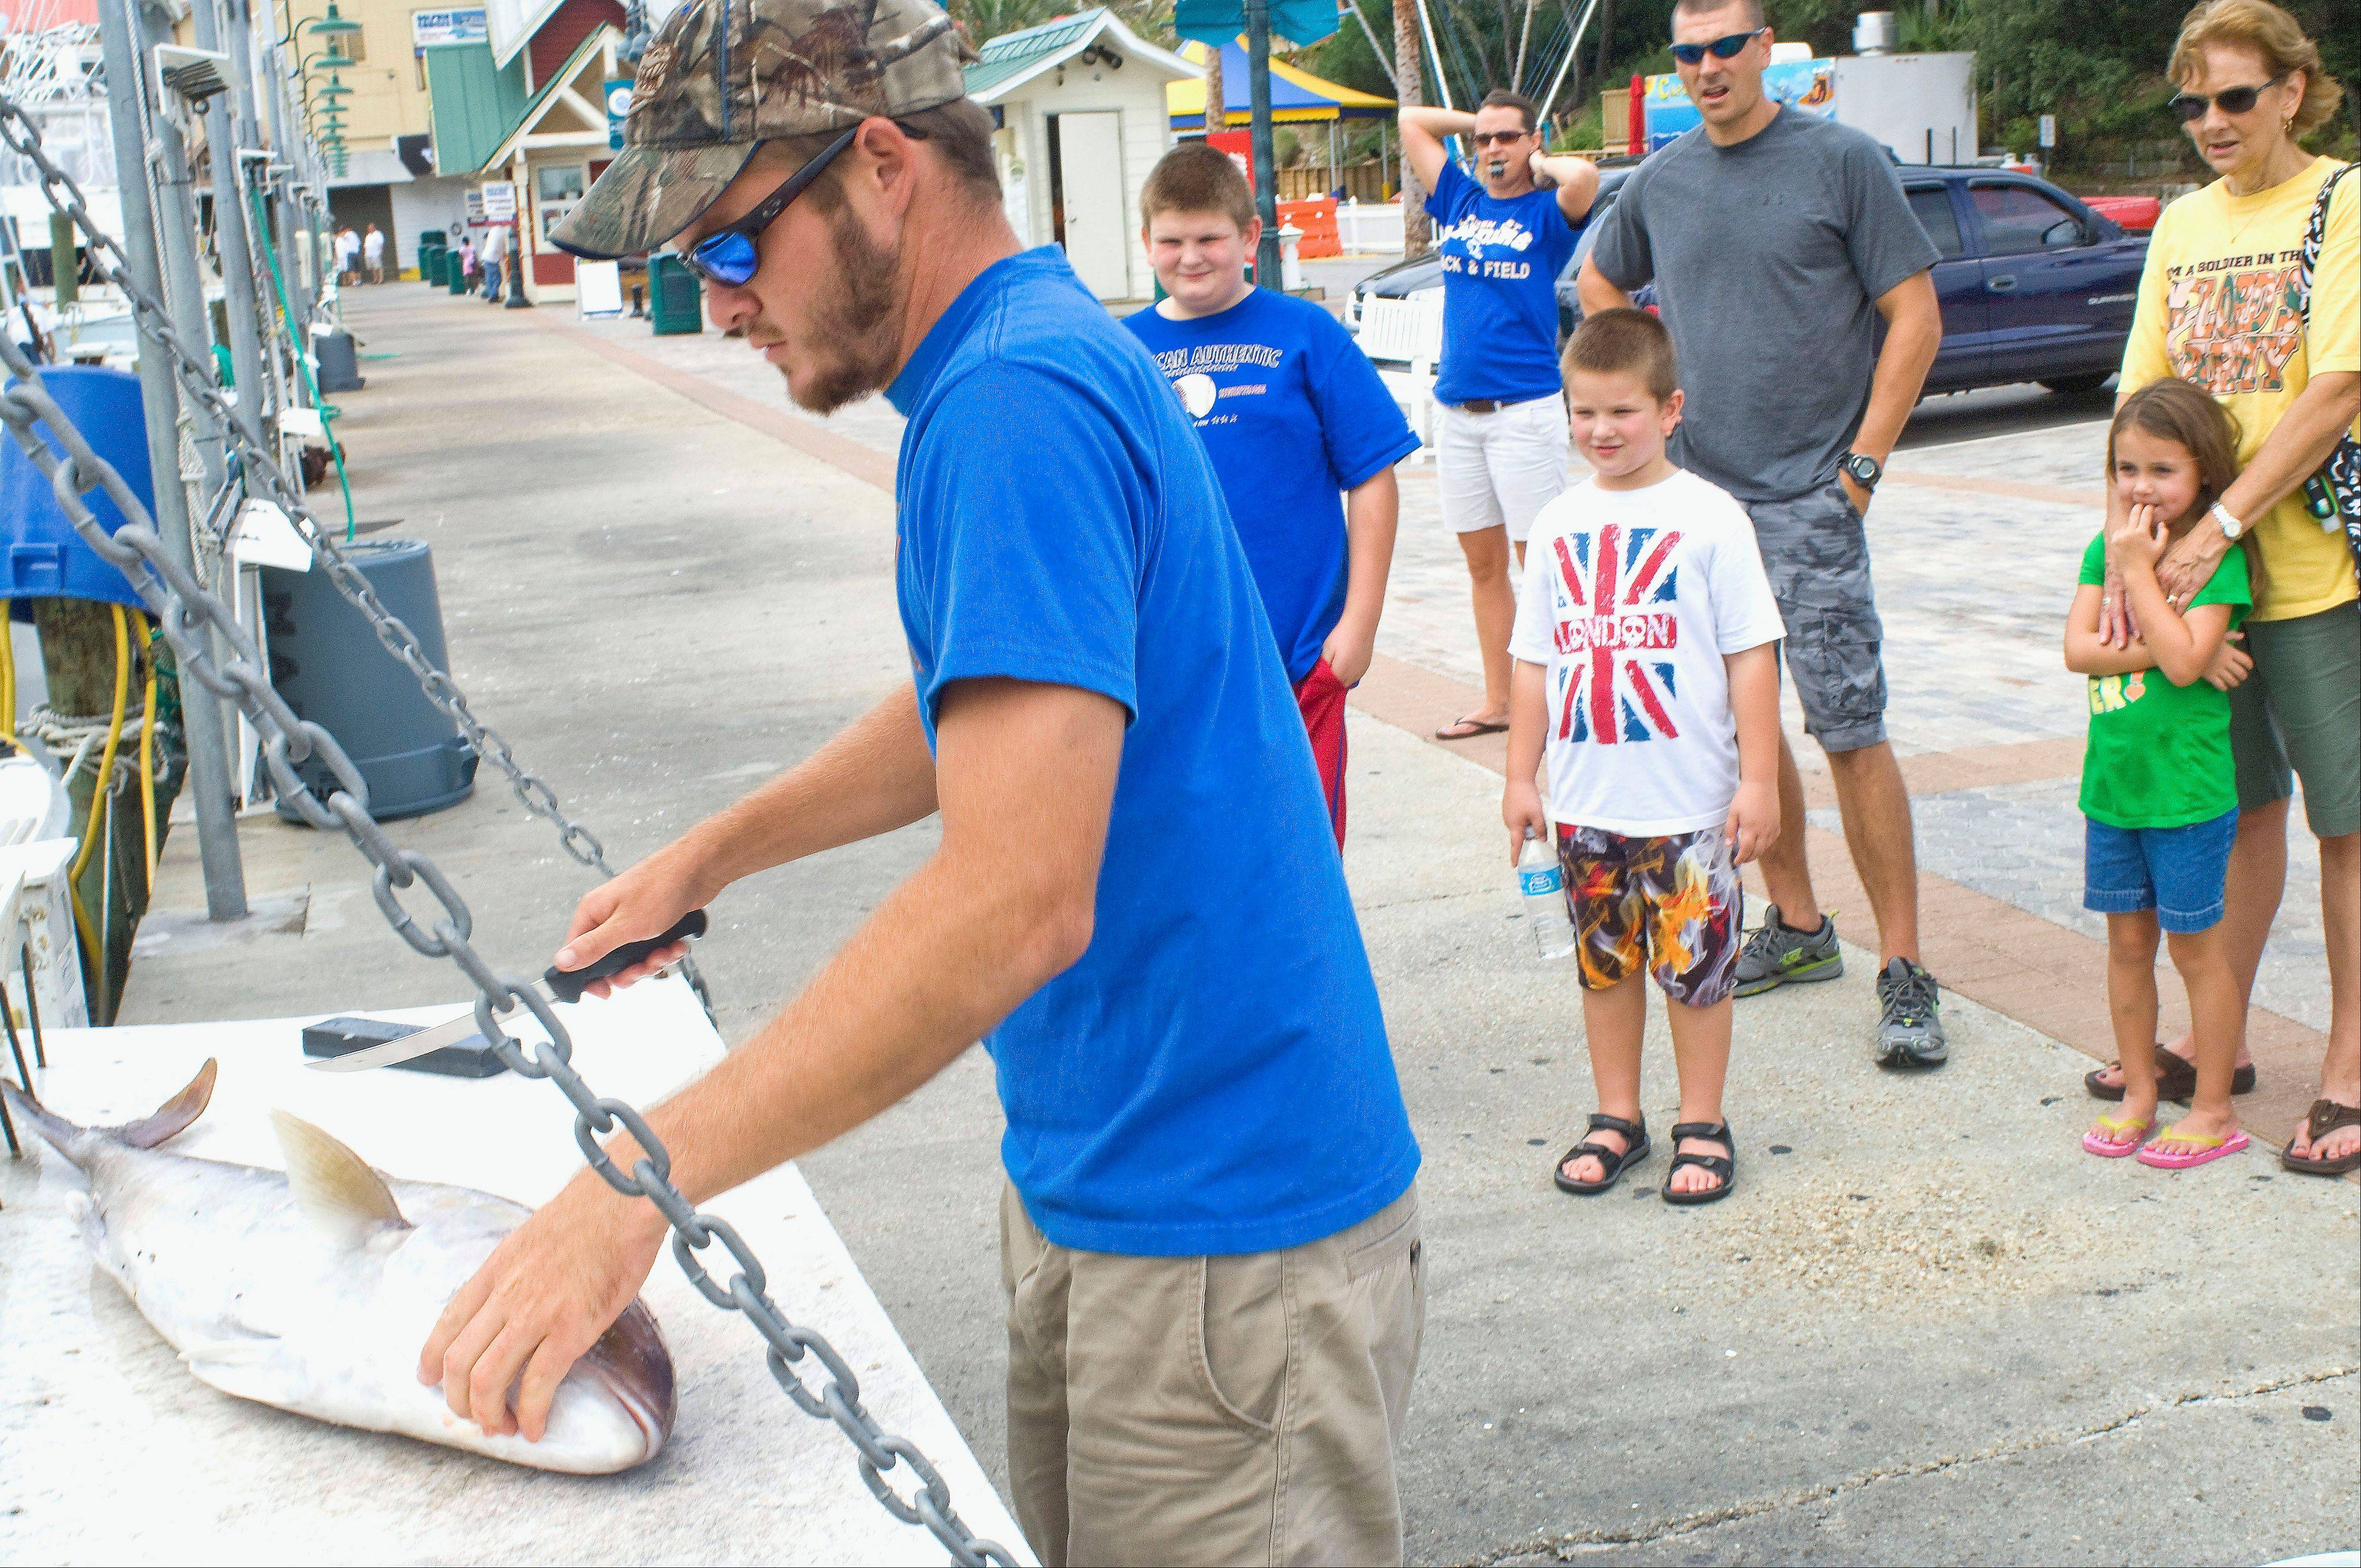 Travis Chunn prepares to fillet a fish in front of an amused group of onlookers on the docks in Destin, Fla. Fishing is still a big industry in the Florida Panhandle resort city of Destin, which has a large charter boat fleet.